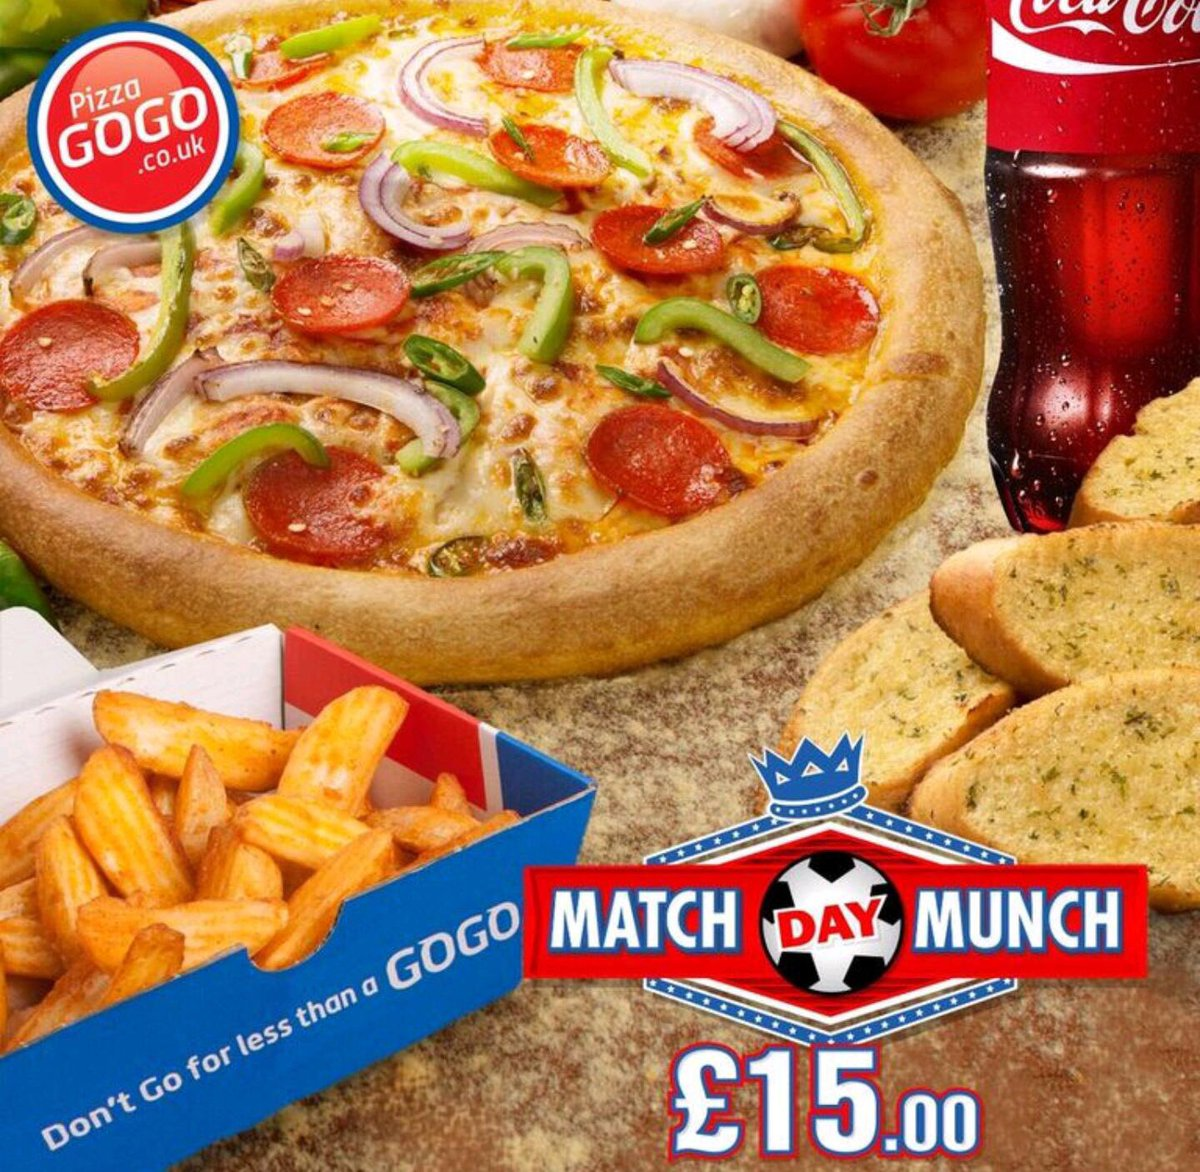 pizza gogo pizzagogo twitter match day munch any large pizza potato wedges garlic bread bottle of soft drink all for only 15 http www pizzagogo co uk menu special offers